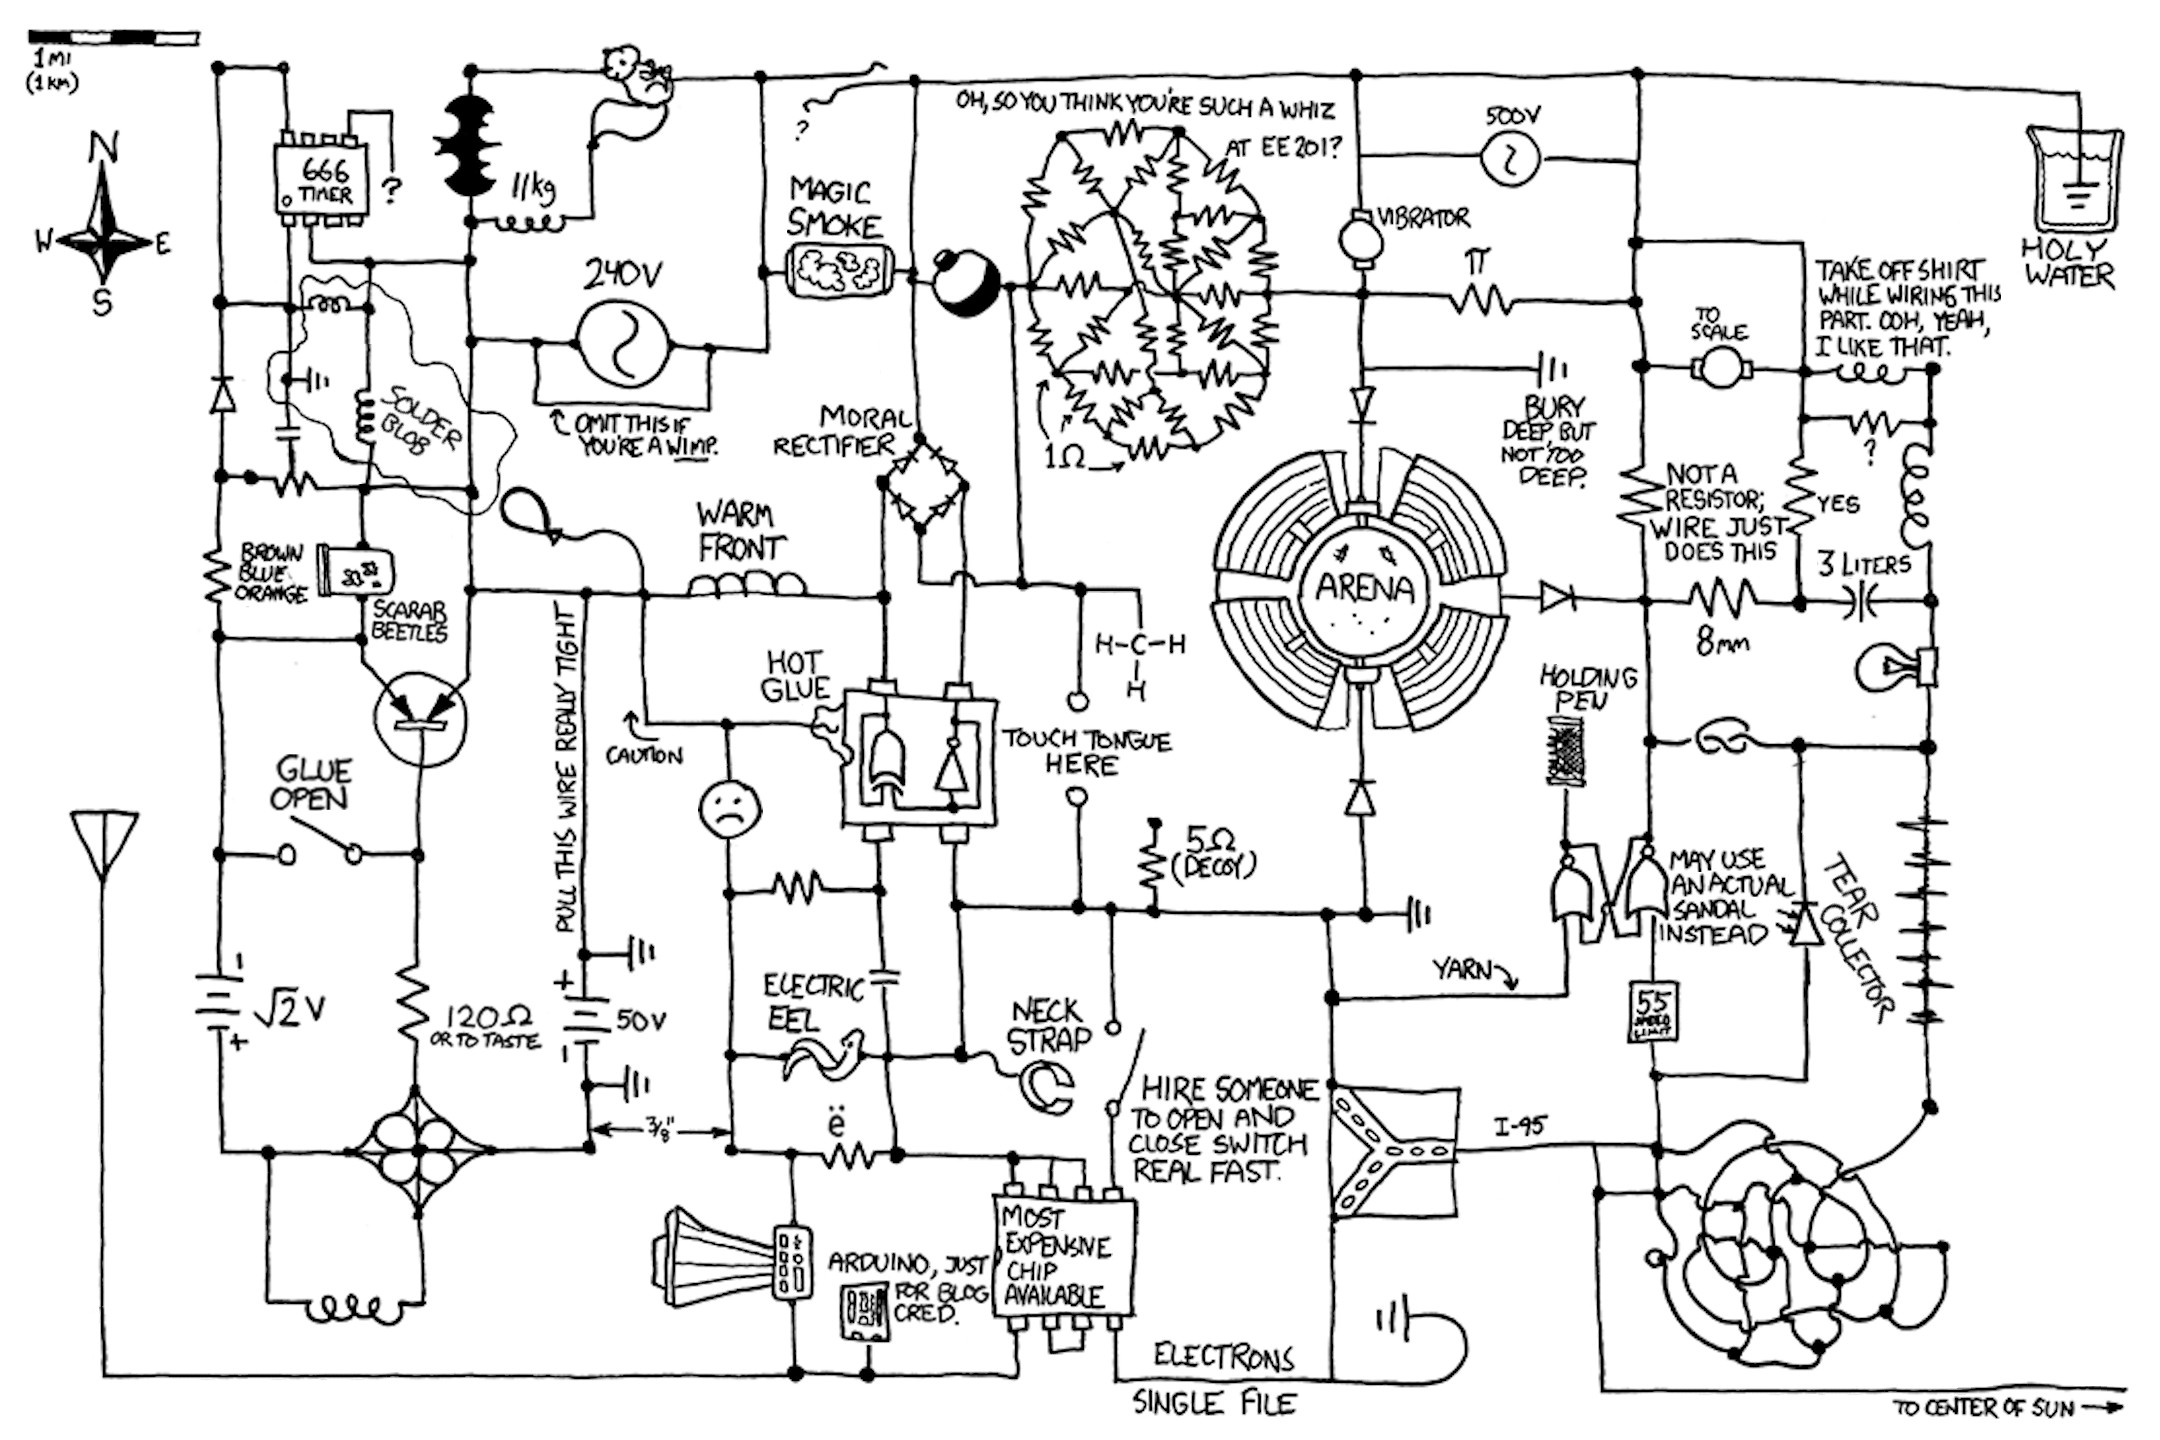 xkcd circuit wiring diagram image rh mainetreasurechest com Xkcd Circuit Drawing My Race Car Wiring Diagrams